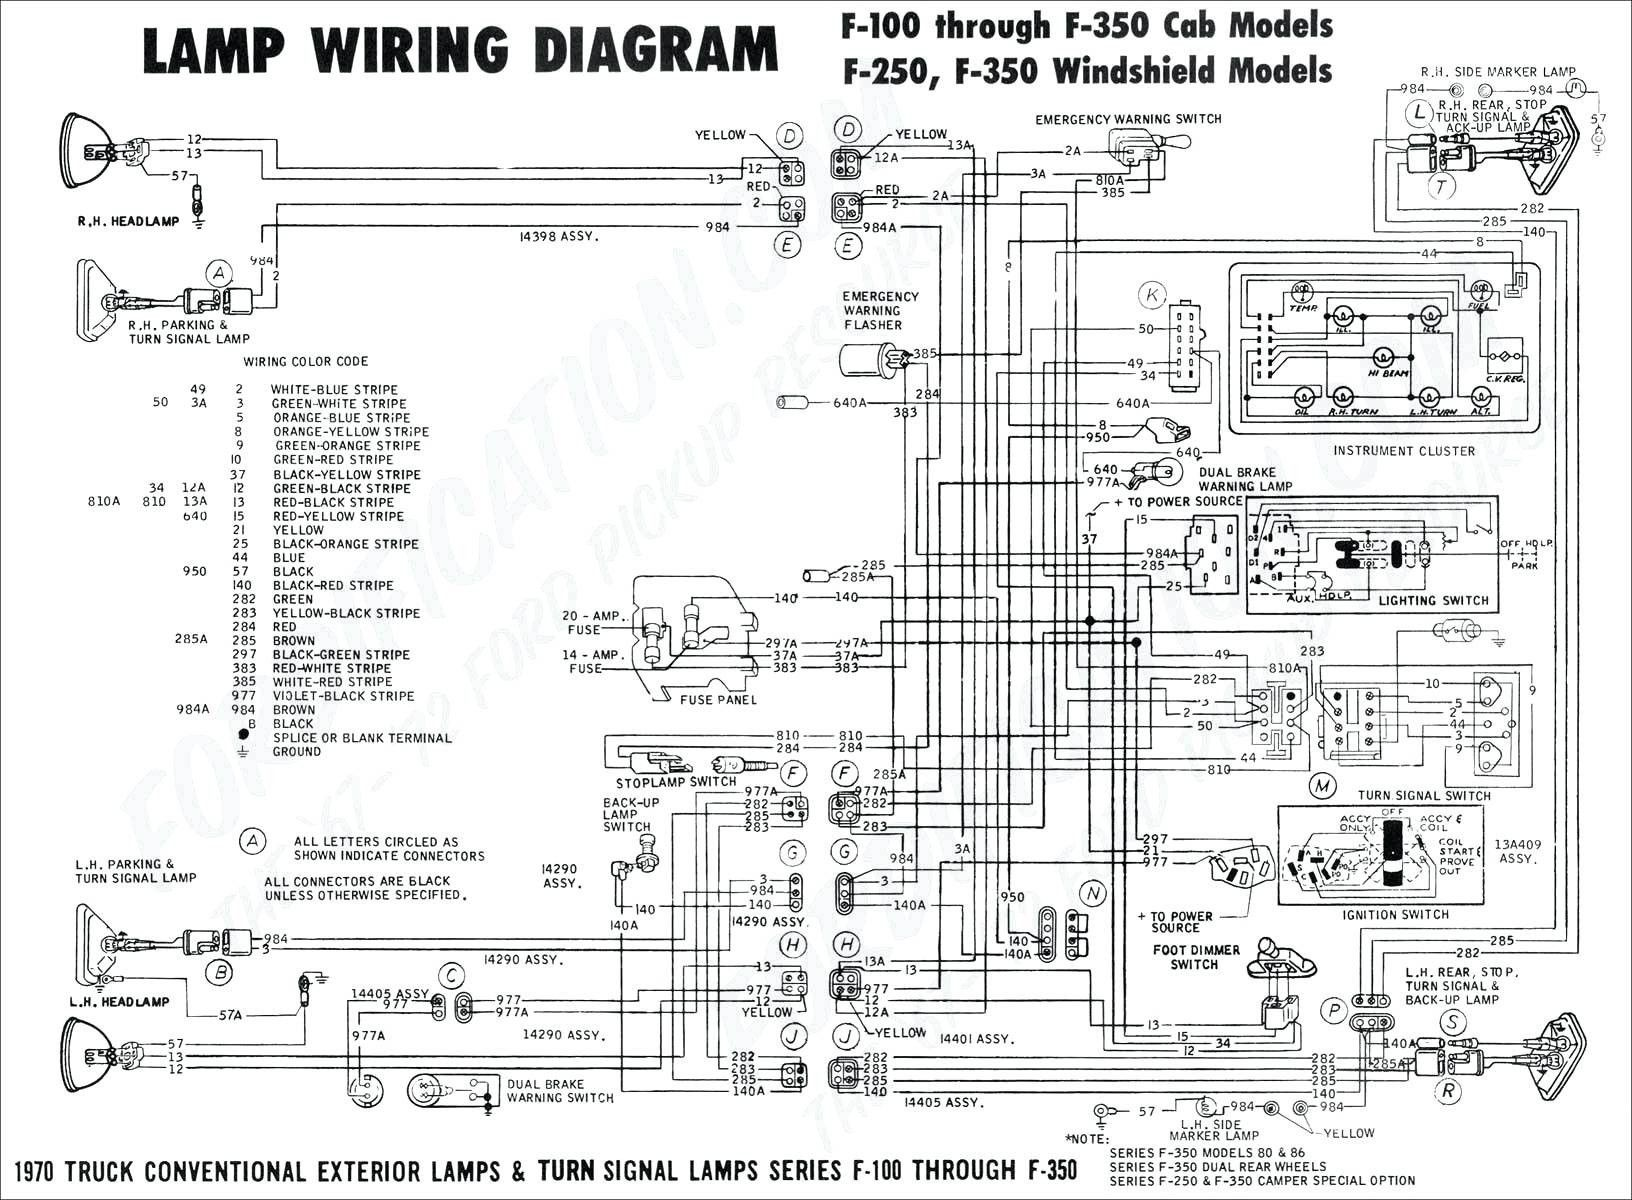 New Wiring Diagram Symbols Hvac #diagrams #digramssample #